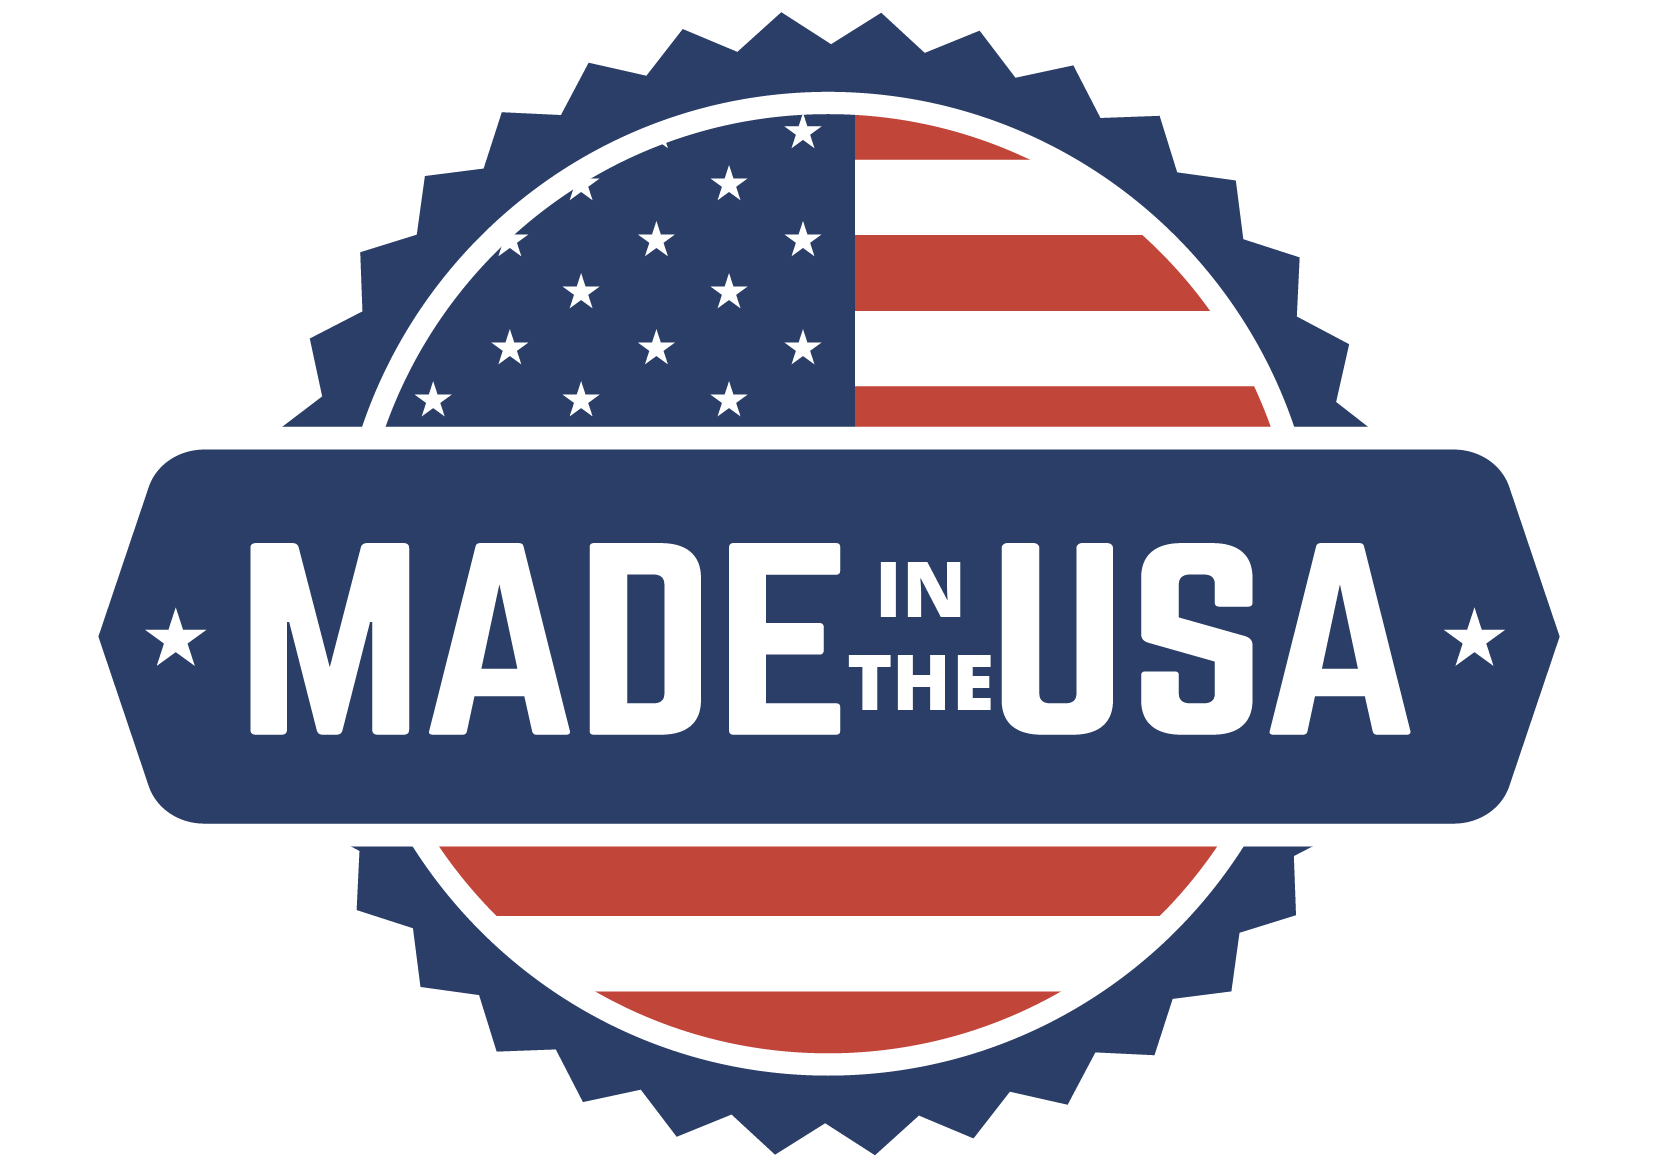 made-in-usa-close-top-01.png